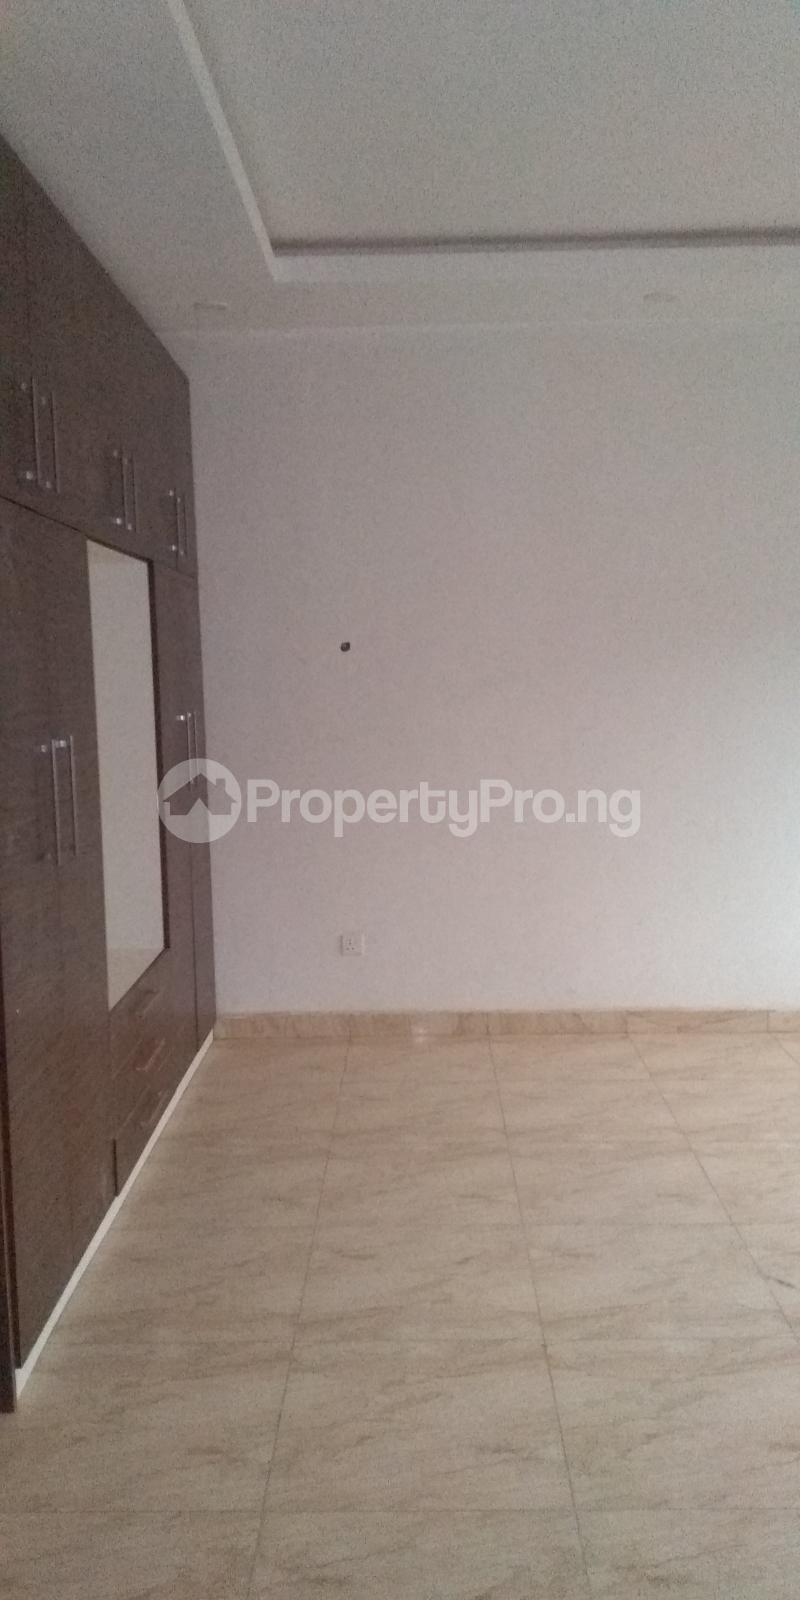 5 bedroom Flat / Apartment for sale Life Camp Abuja - 5